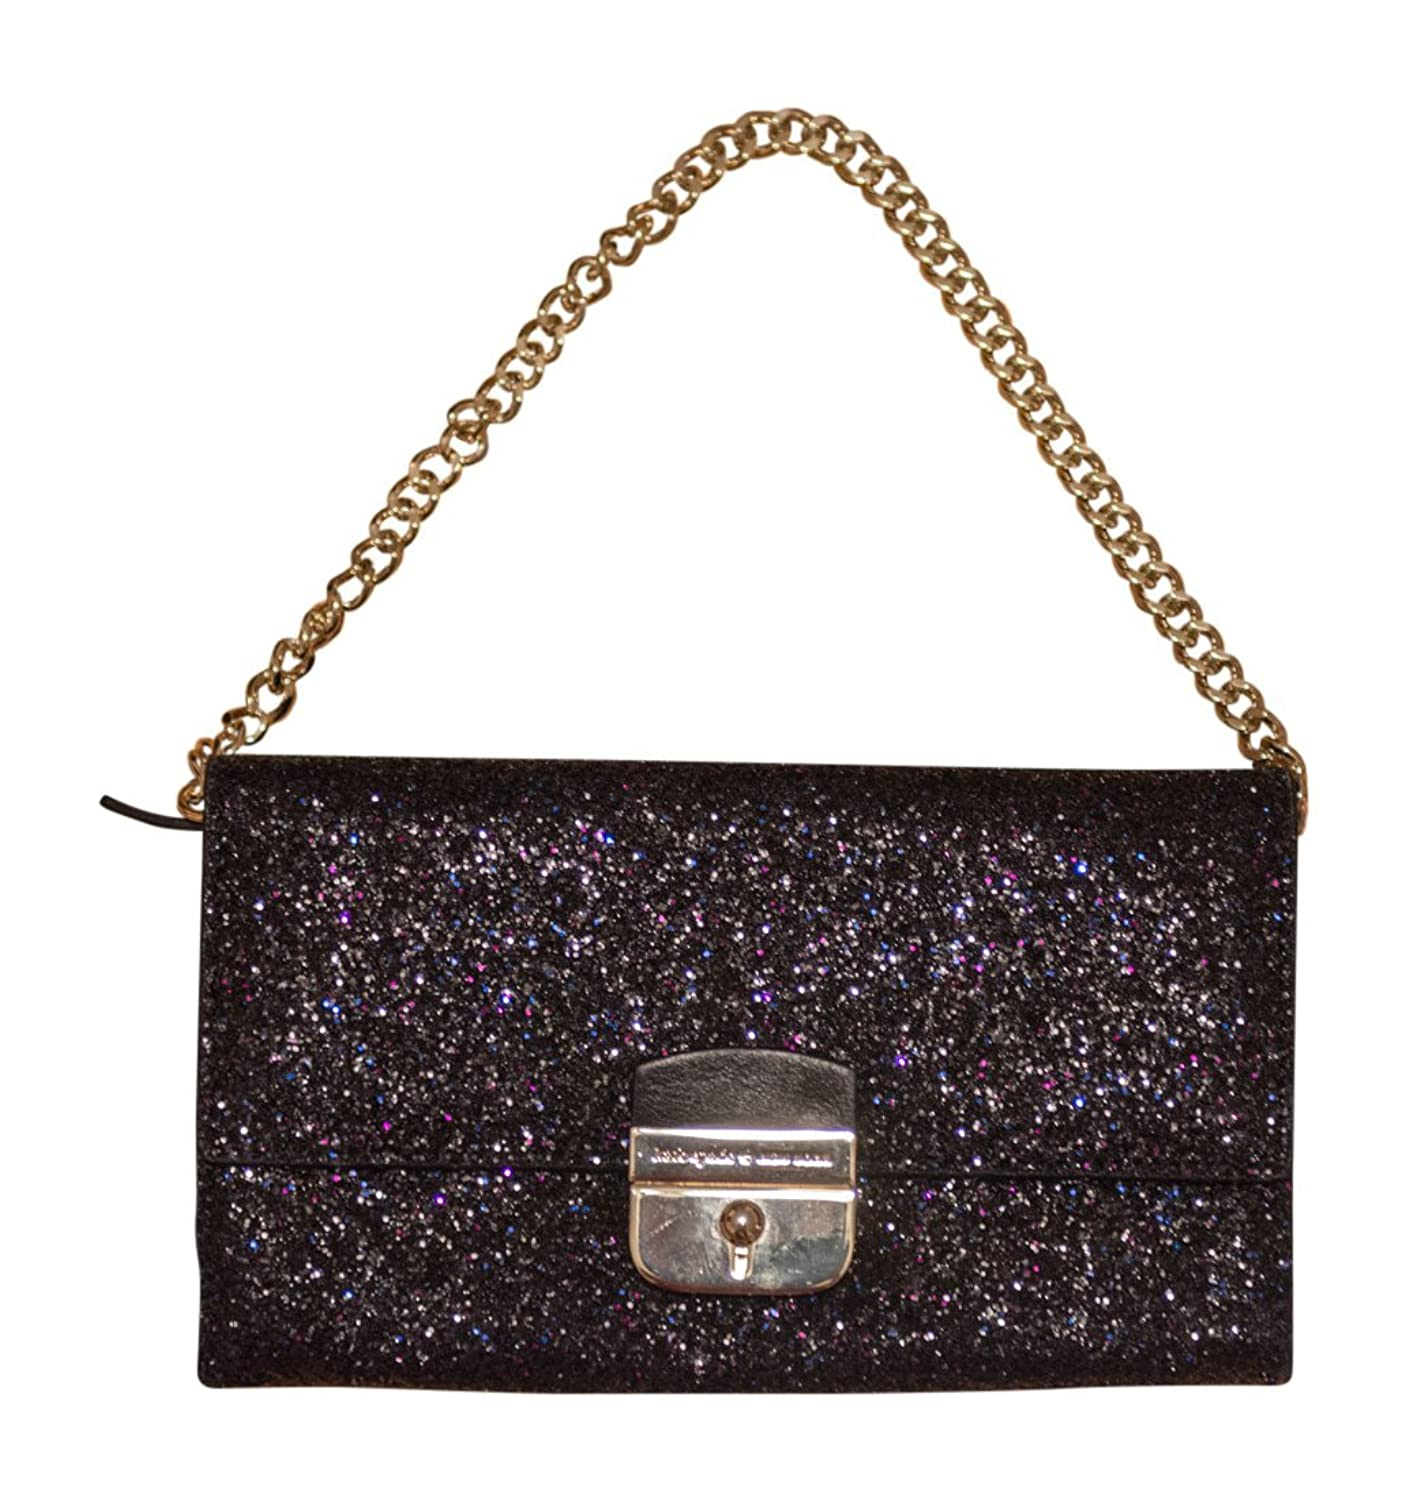 be9a5a42b4201d Terrific Kate Spade Purses And Handbags That Will Blow You Away